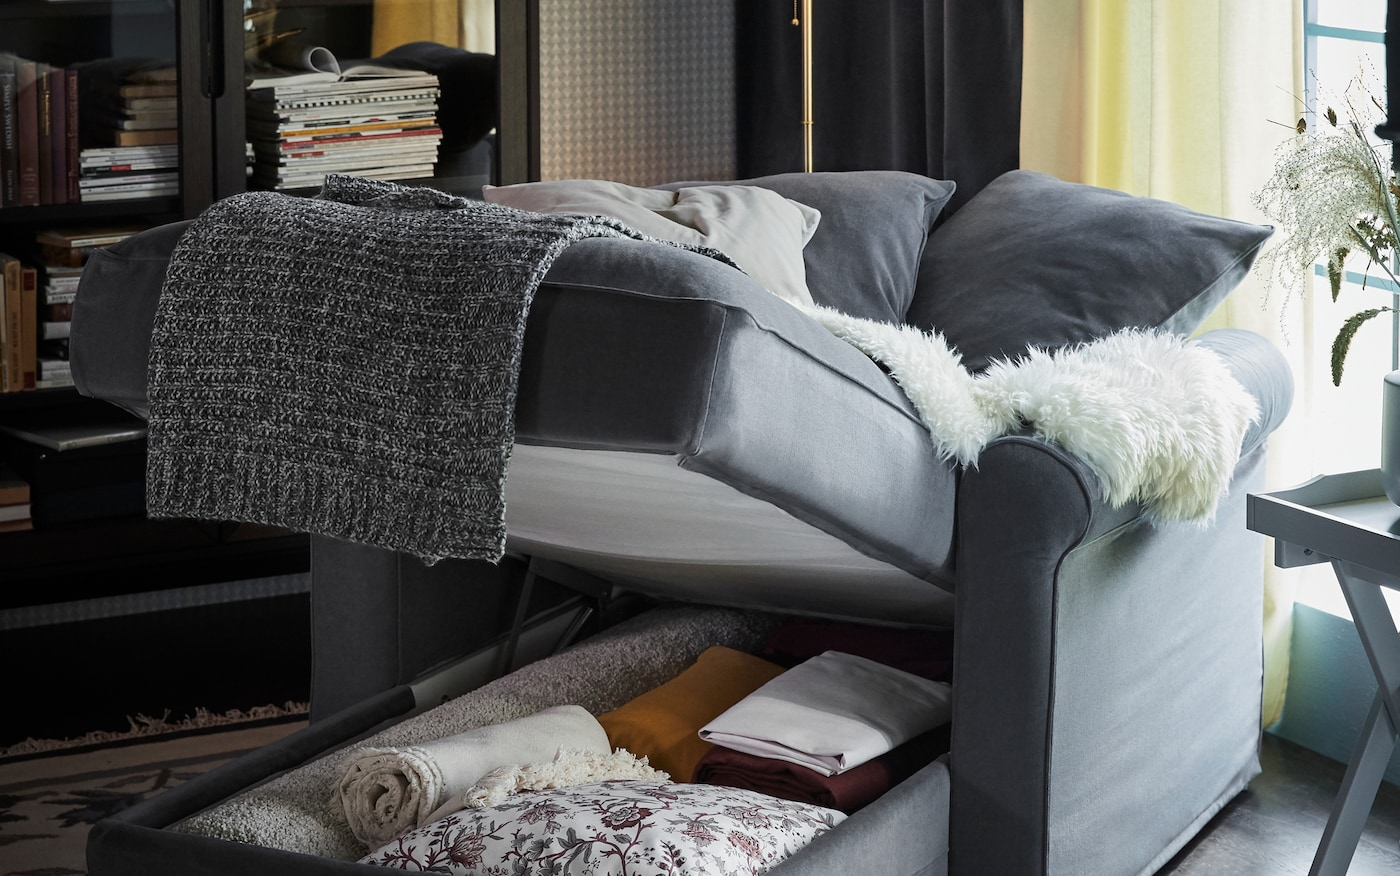 Keep blankets, cushions and extra accessories inside the grey GRÖNLID chaise longue's built in storage.